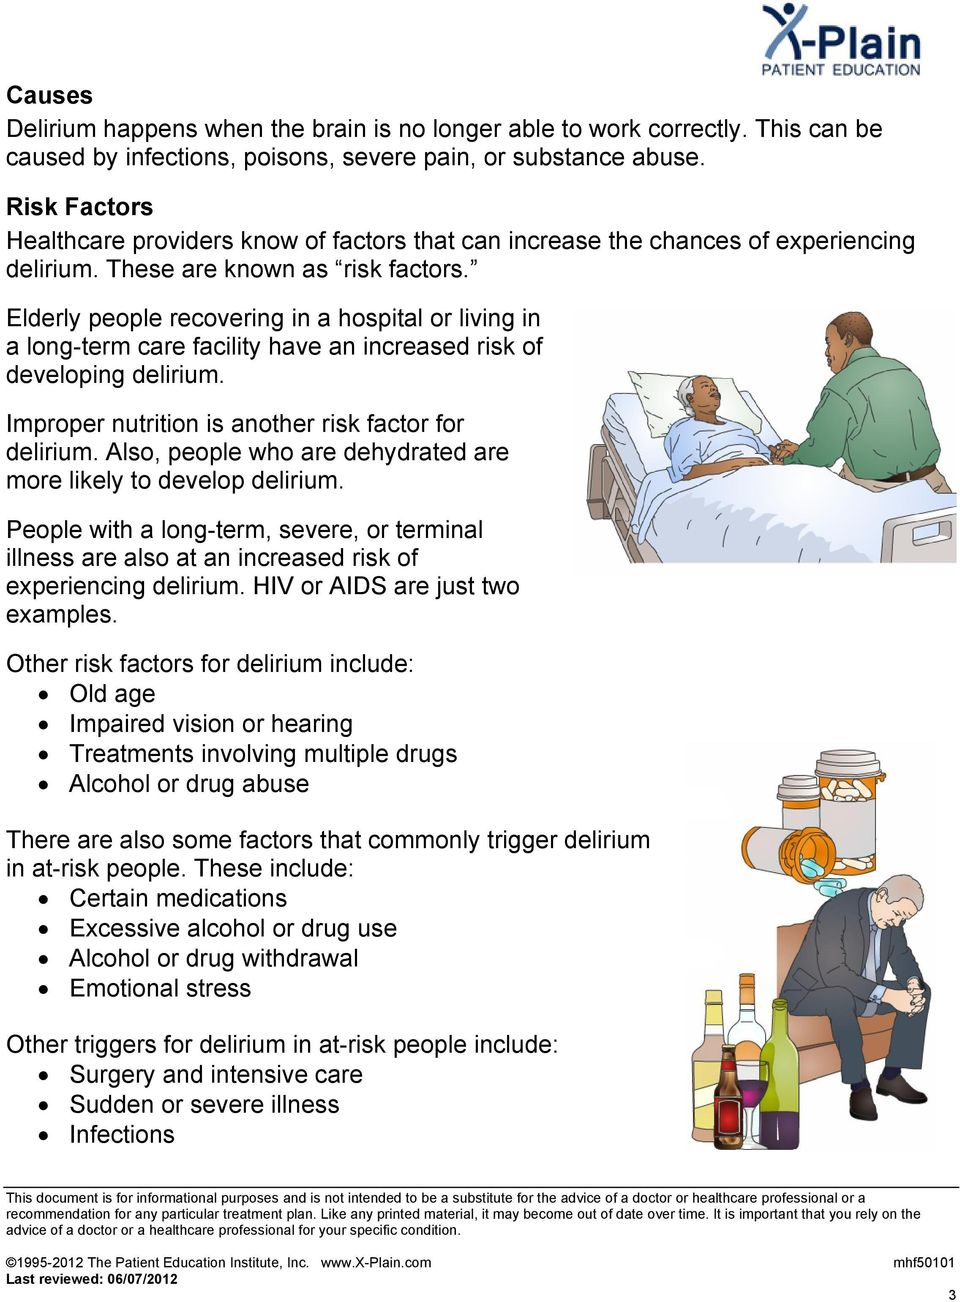 Elderly people recovering in a hospital or living in a long-term care facility have an increased risk of developing delirium. Improper nutrition is another risk factor for delirium.